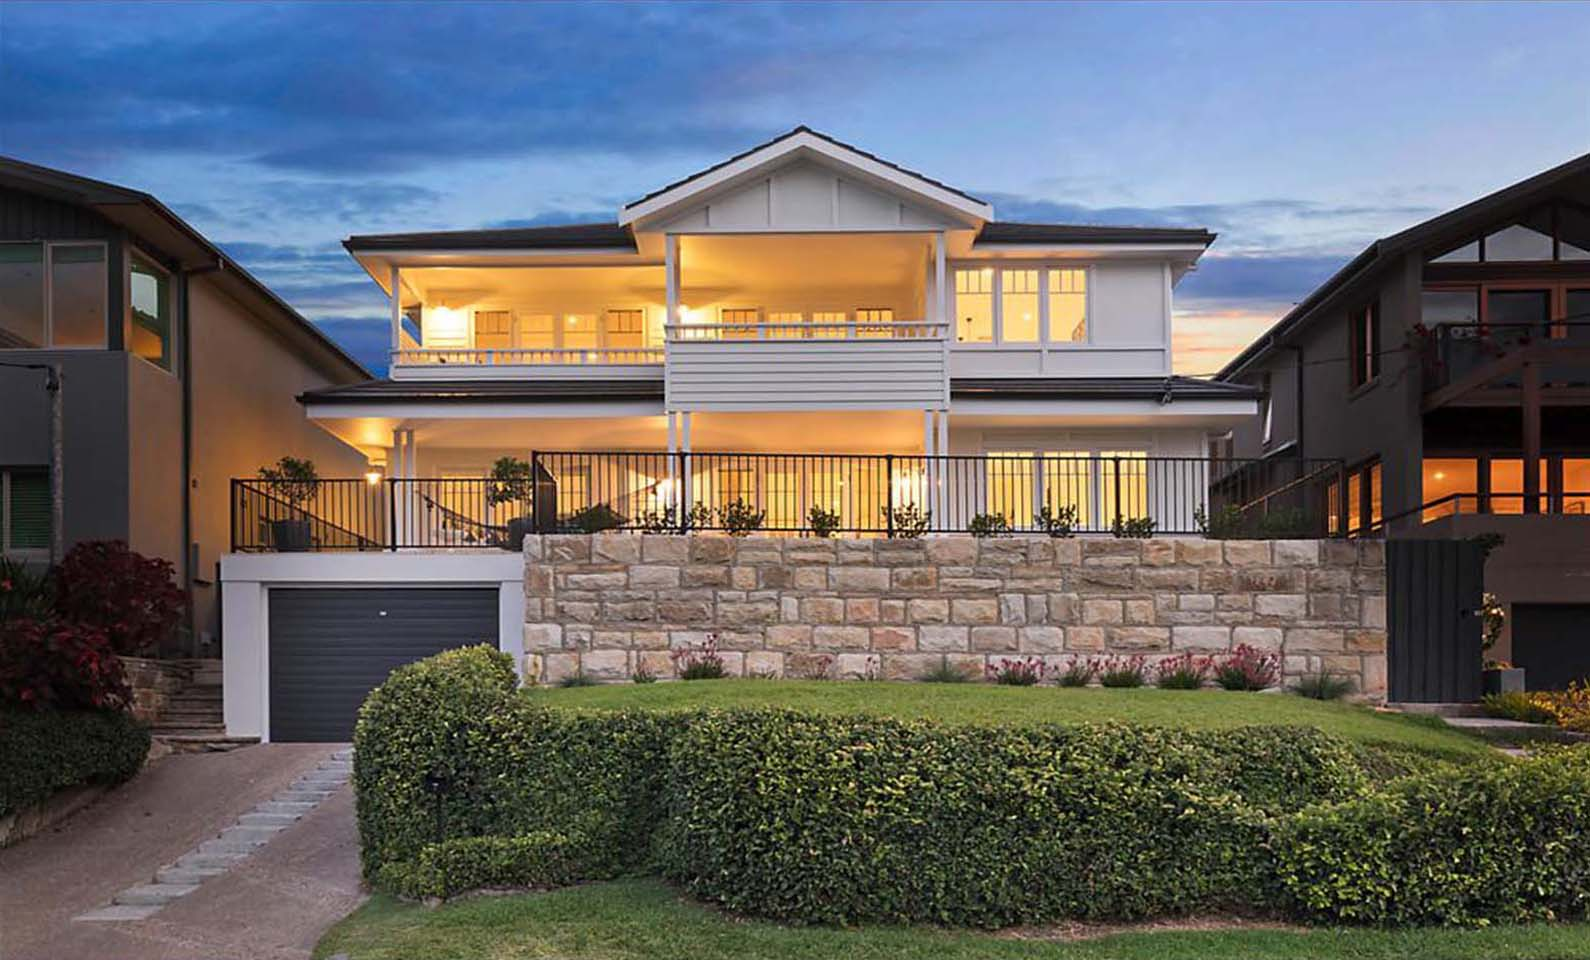 Jellicoe House Balgowlah - View from the lawn - designed by All Australian Architecture